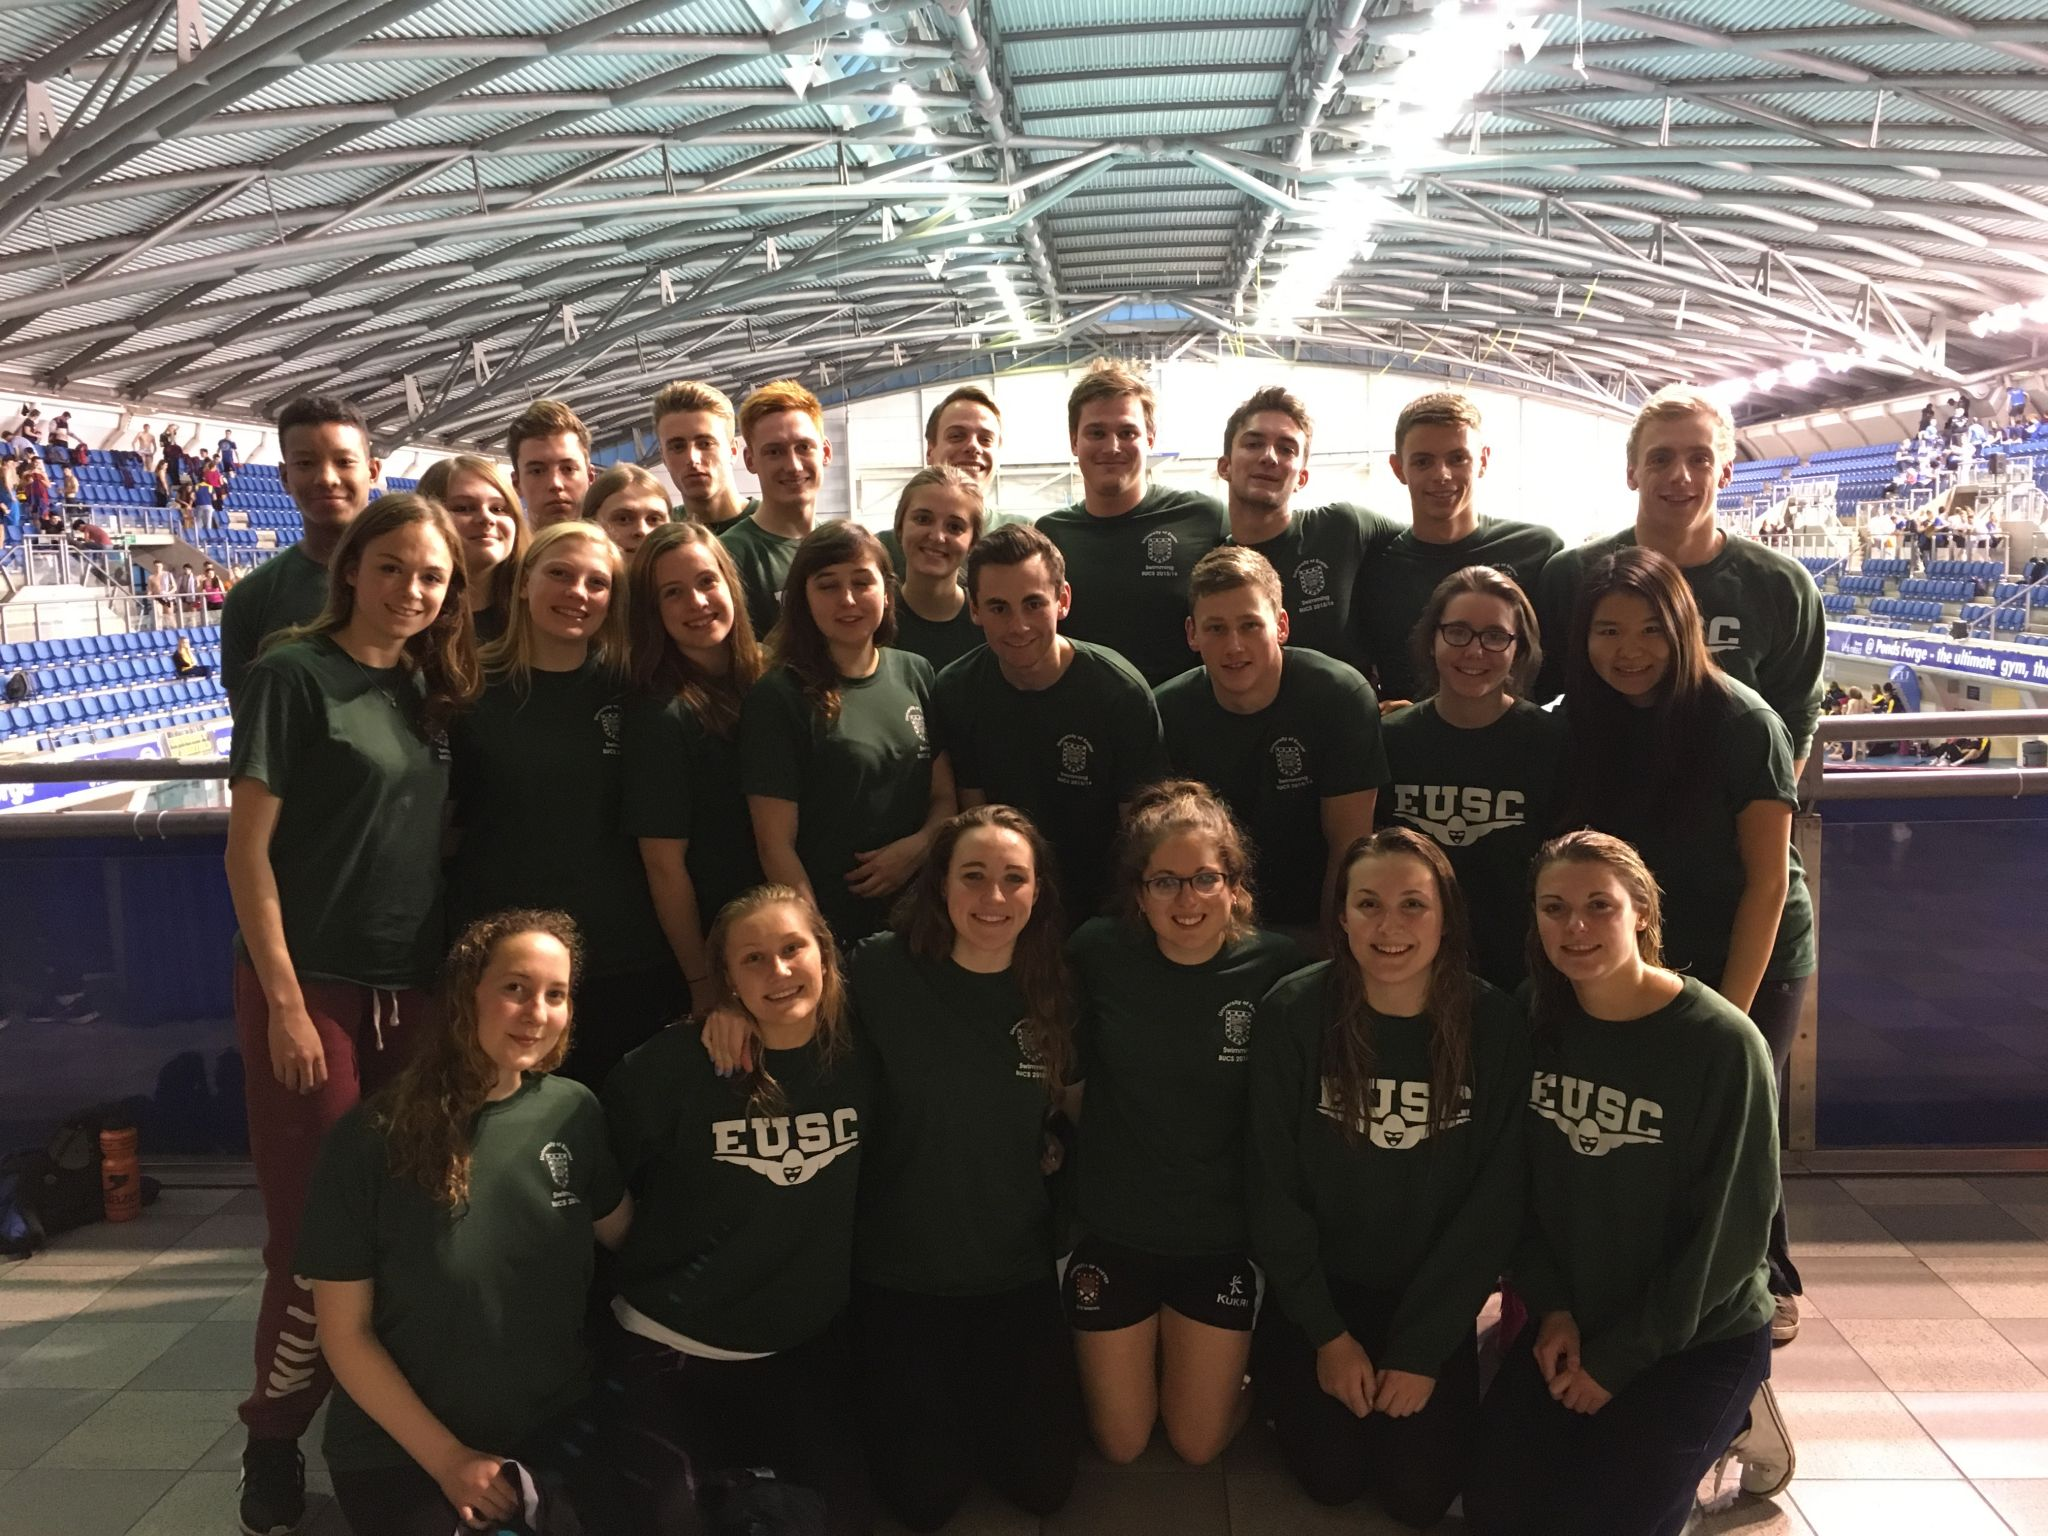 Eusc Blow Competition Out Of The Water At Bucs University Of Exeter Swimming Club